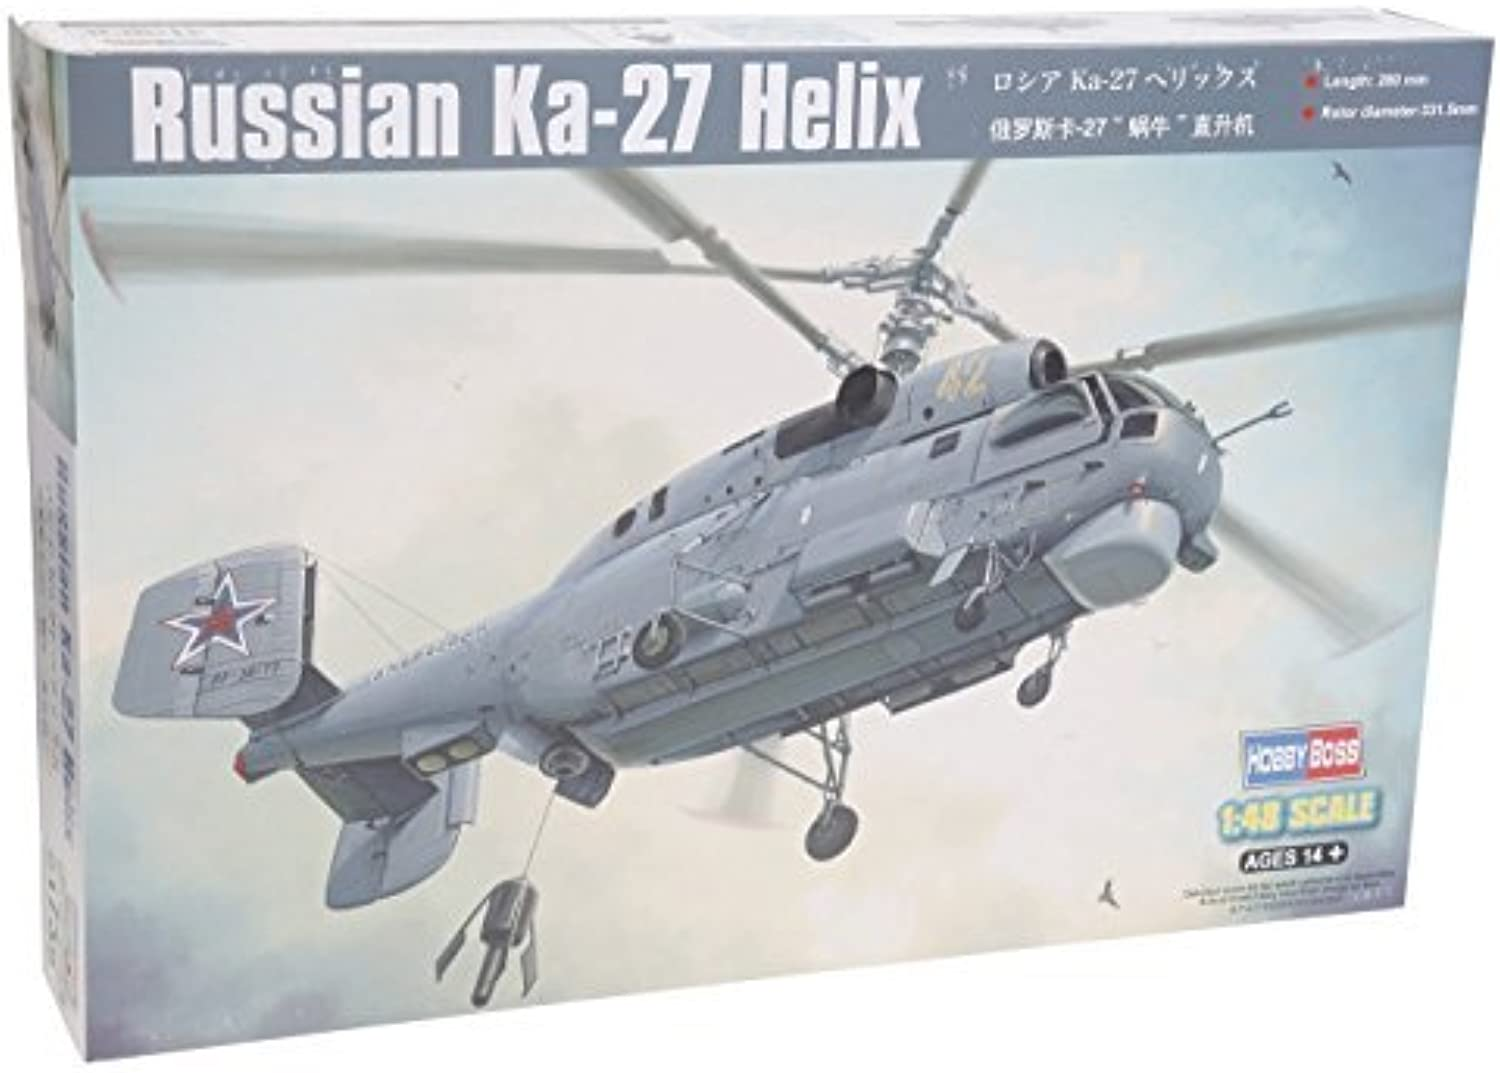 muy popular Hobbyboss 1 48 48 48 Scale  Russian Ka-27 Helix  Assembly Kit by Hobbyboss  estilo clásico